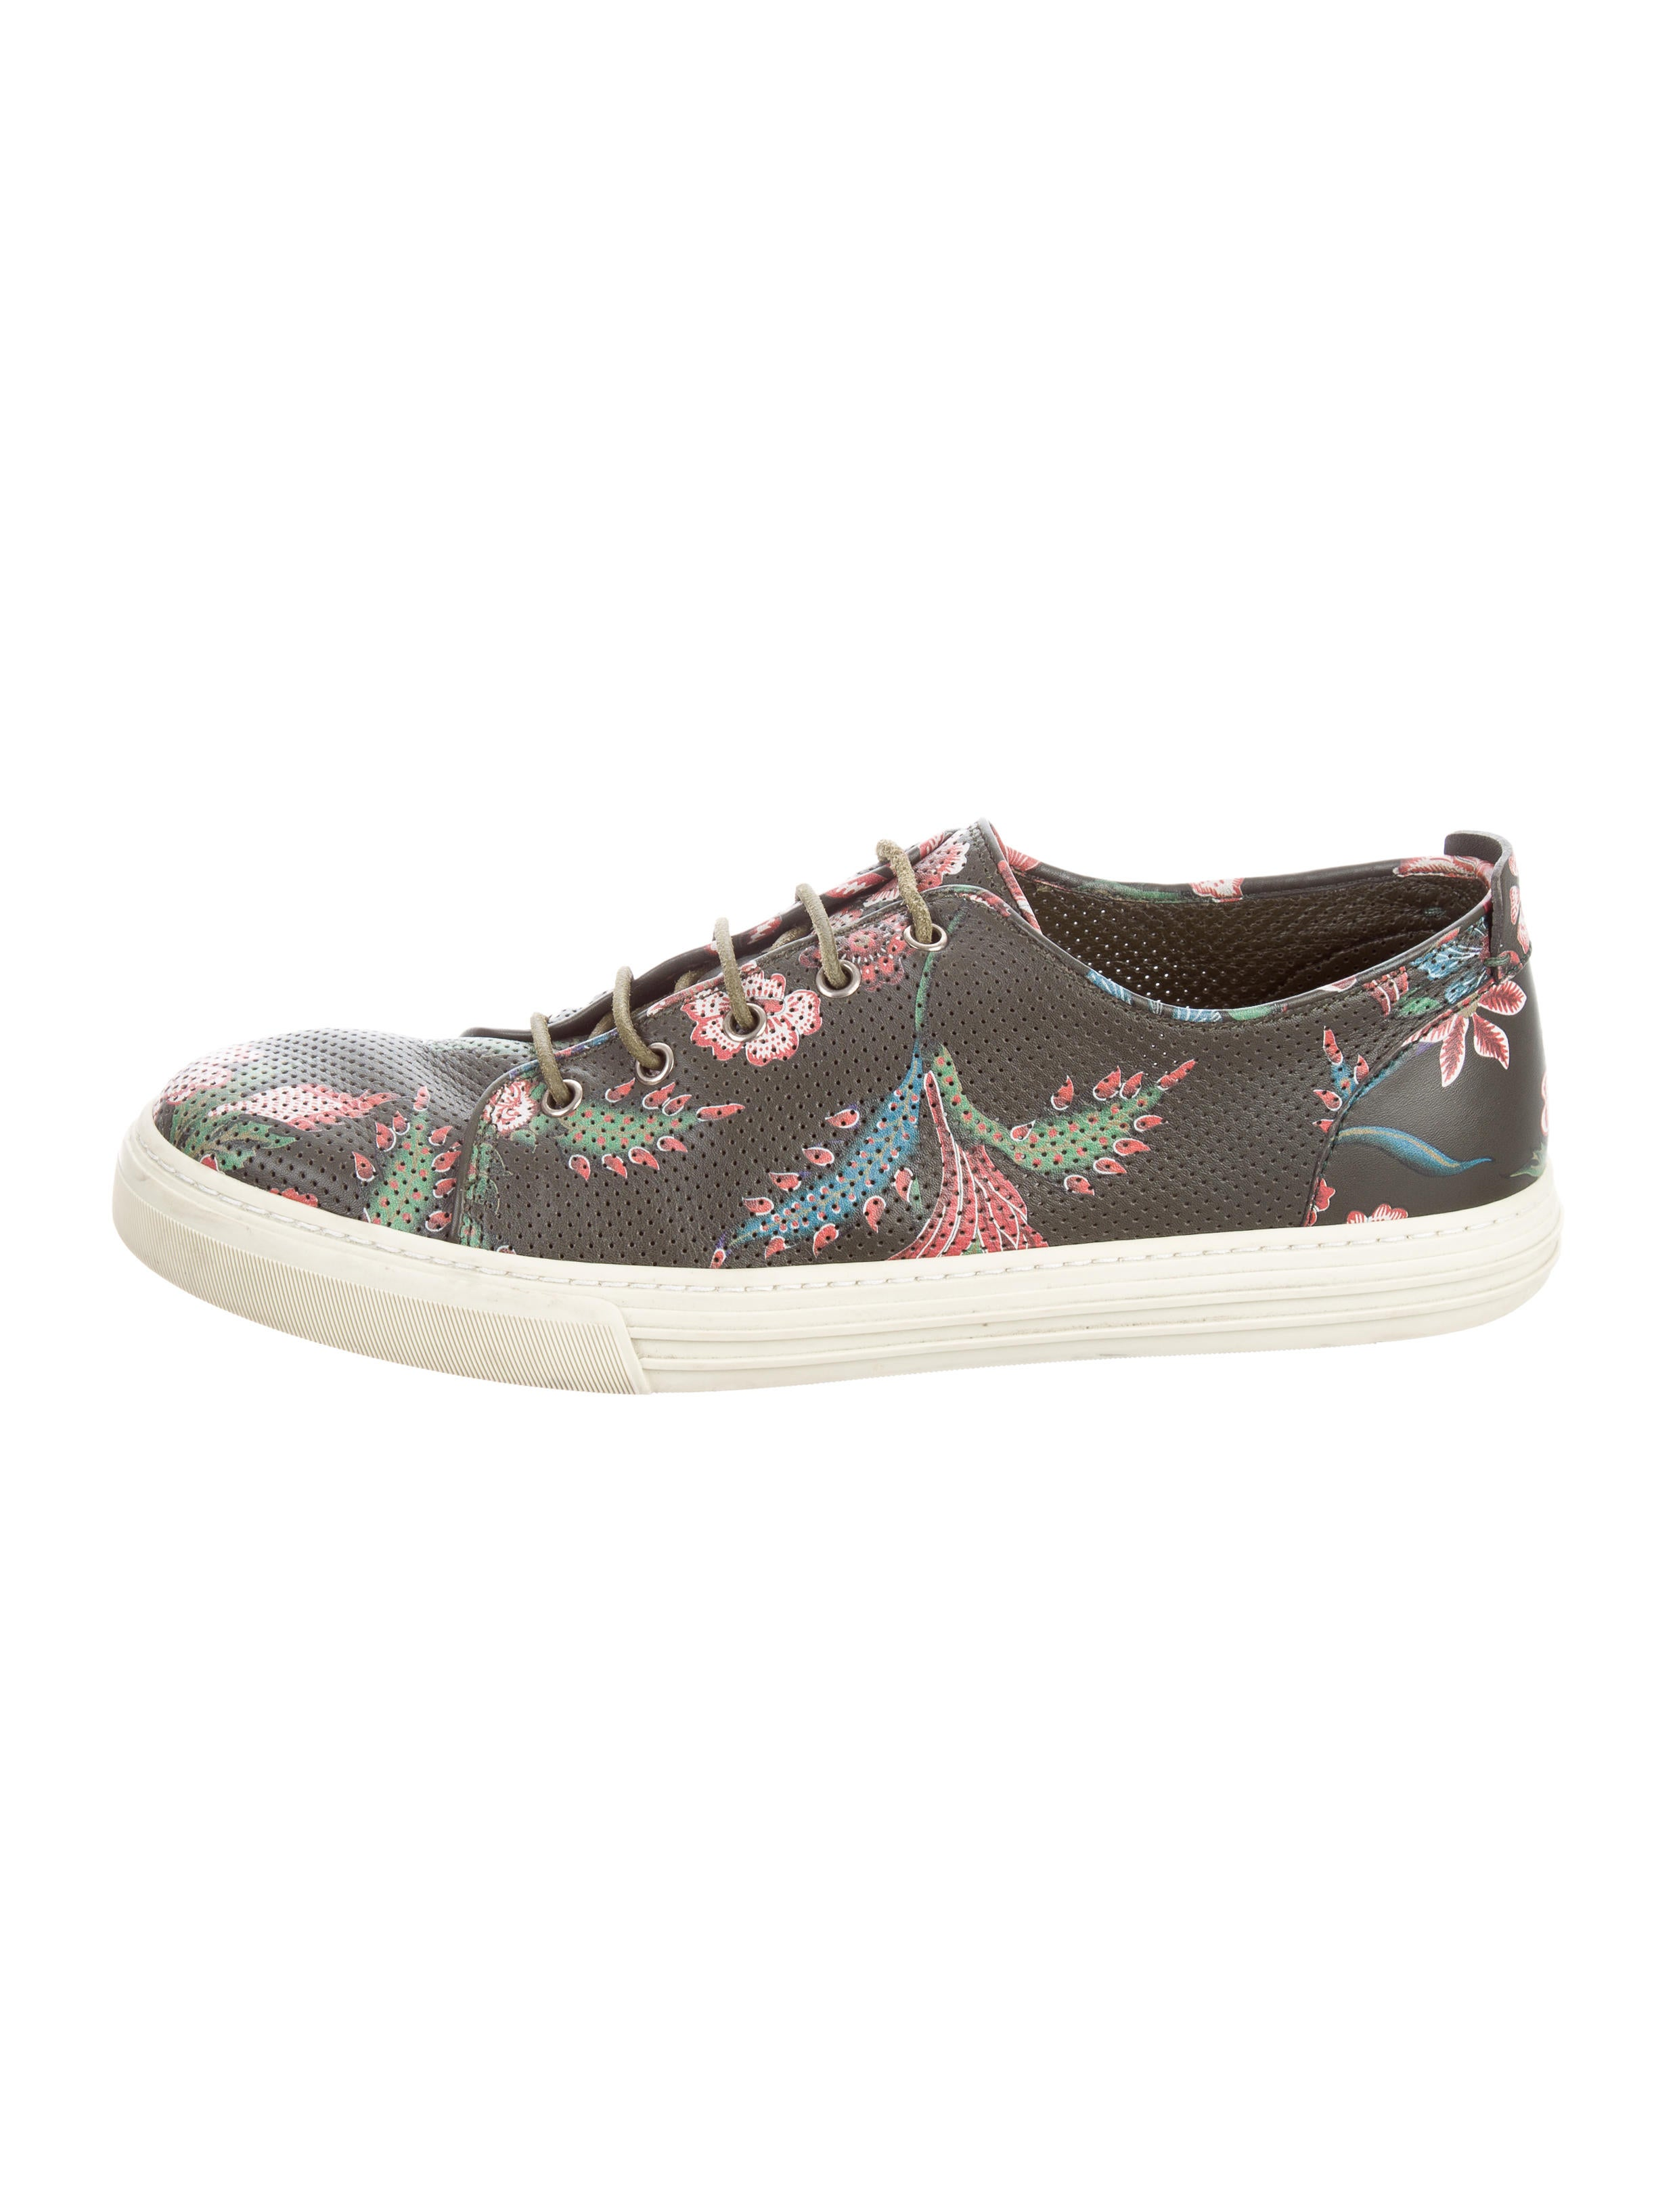 gucci leather floral print sneakers - shoes